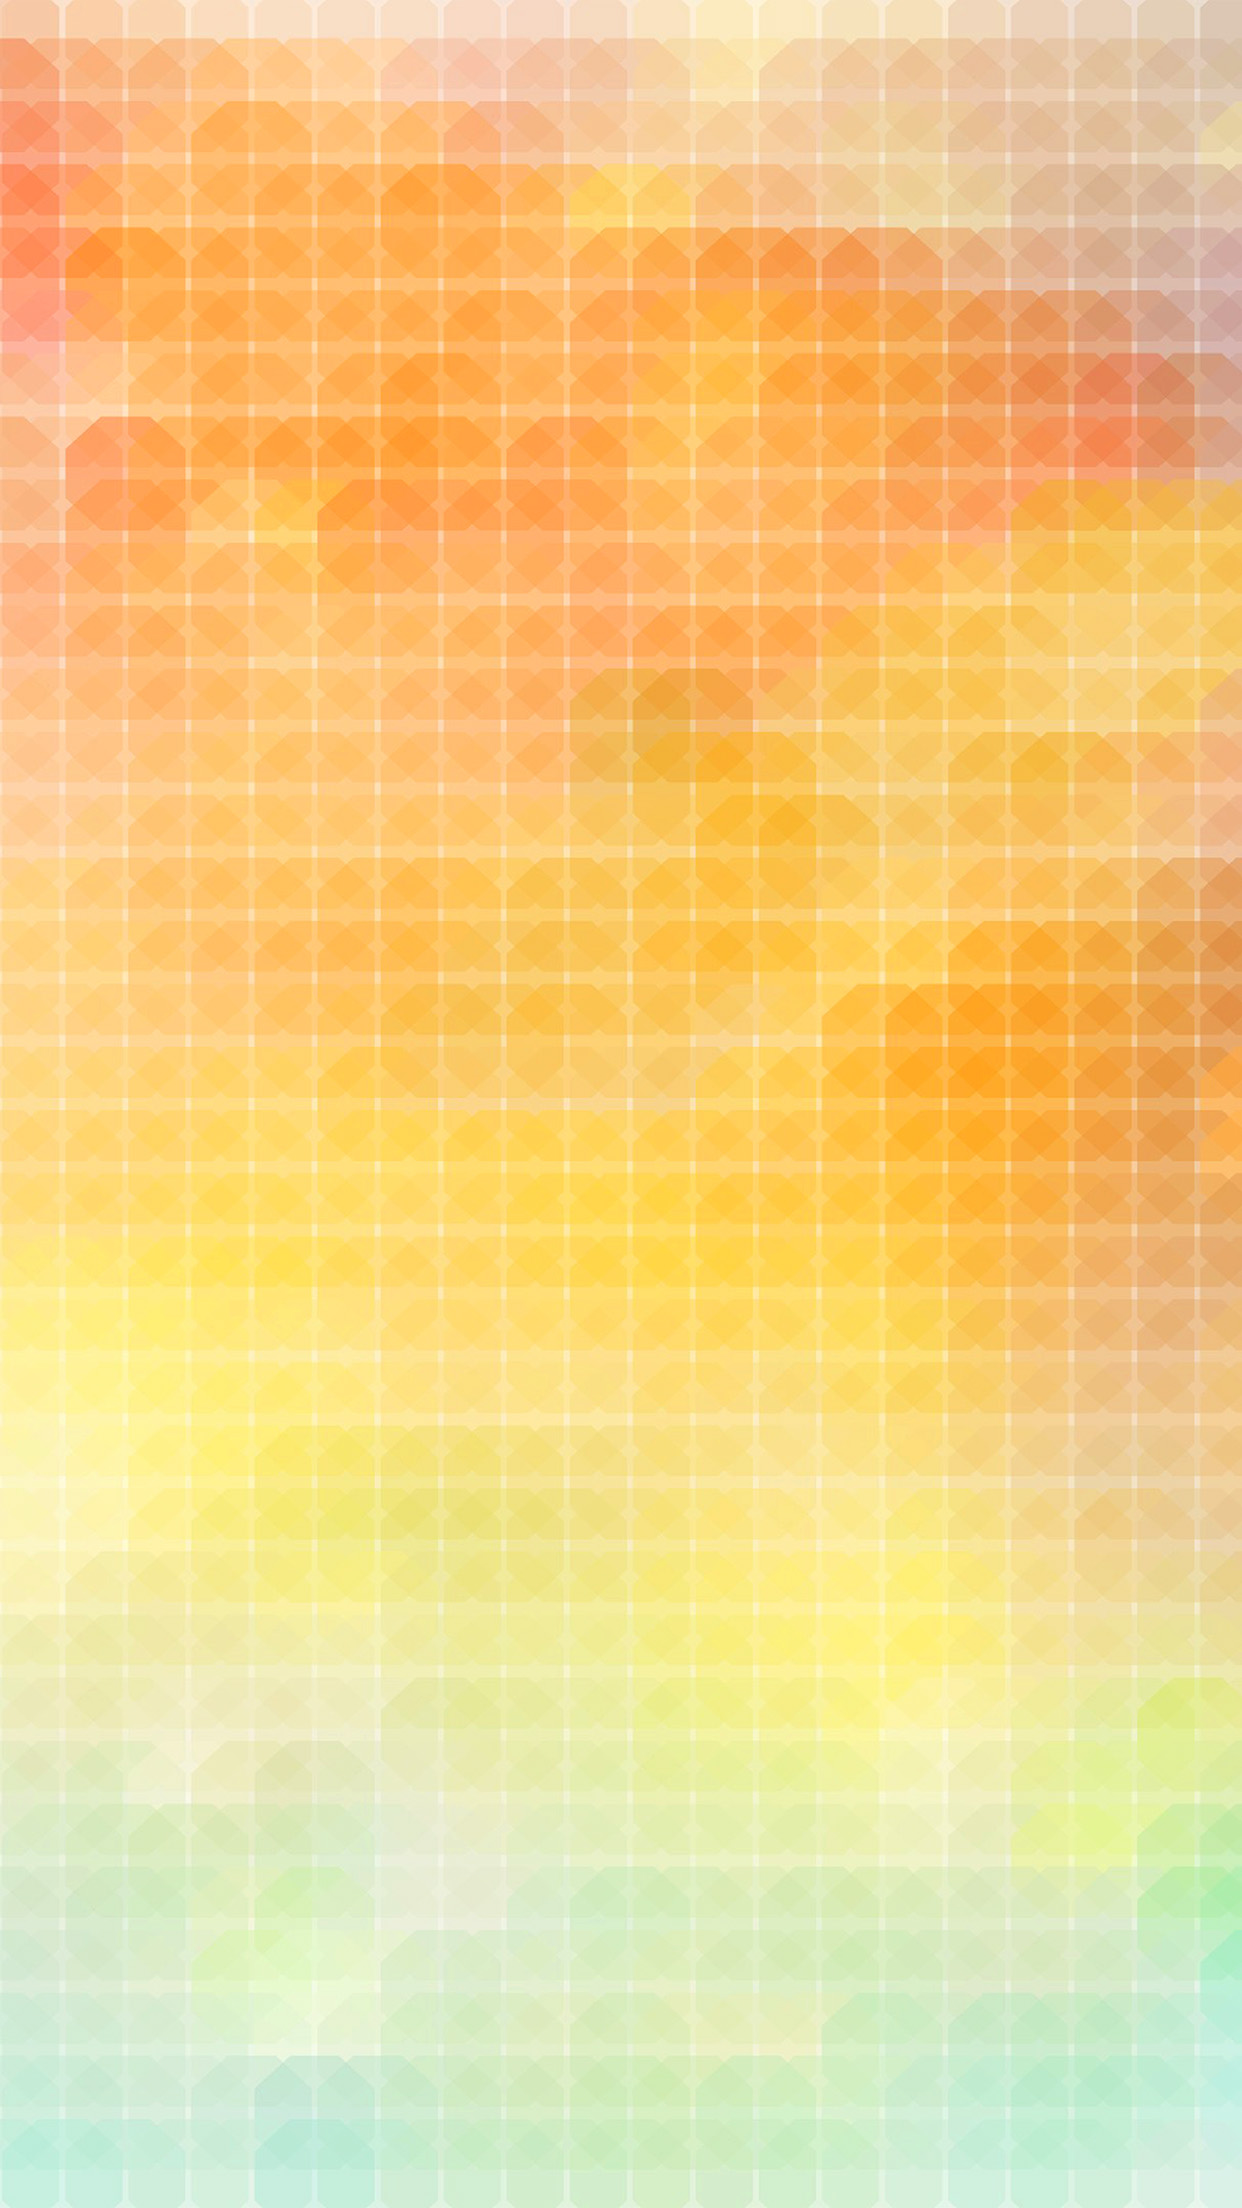 Bokeh Digital Abstract Art Pattern Android wallpaper